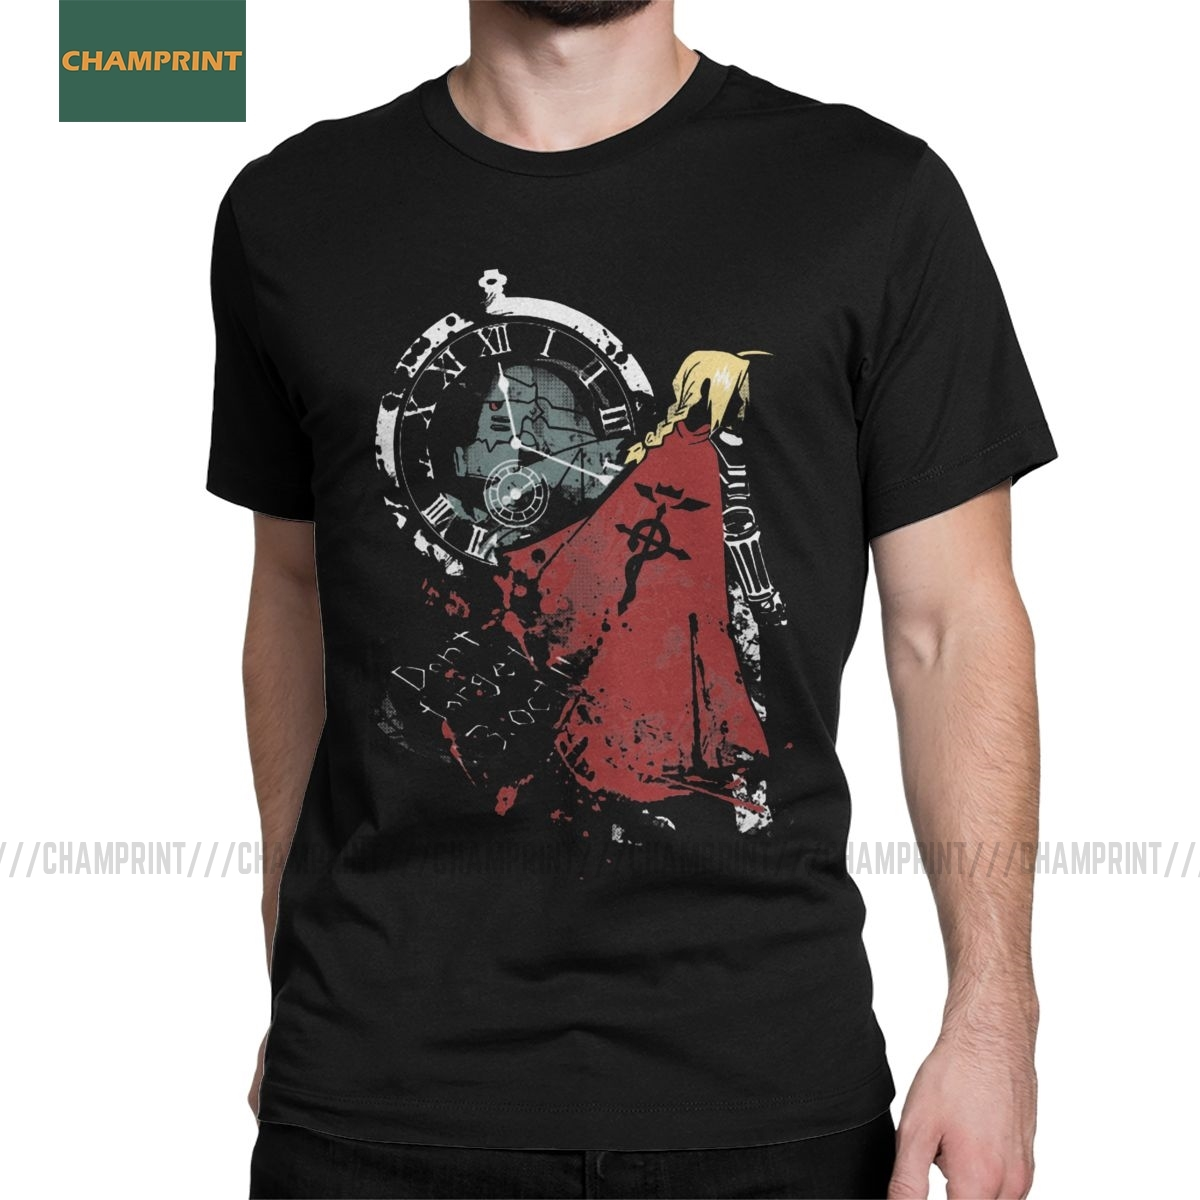 Fullmetal Alchemist T Shirt Men Cotton Vintage T-Shirt Elric Edward Brotherhood Anime Fma Manga Tees Short Sleeve Tops Plus Size